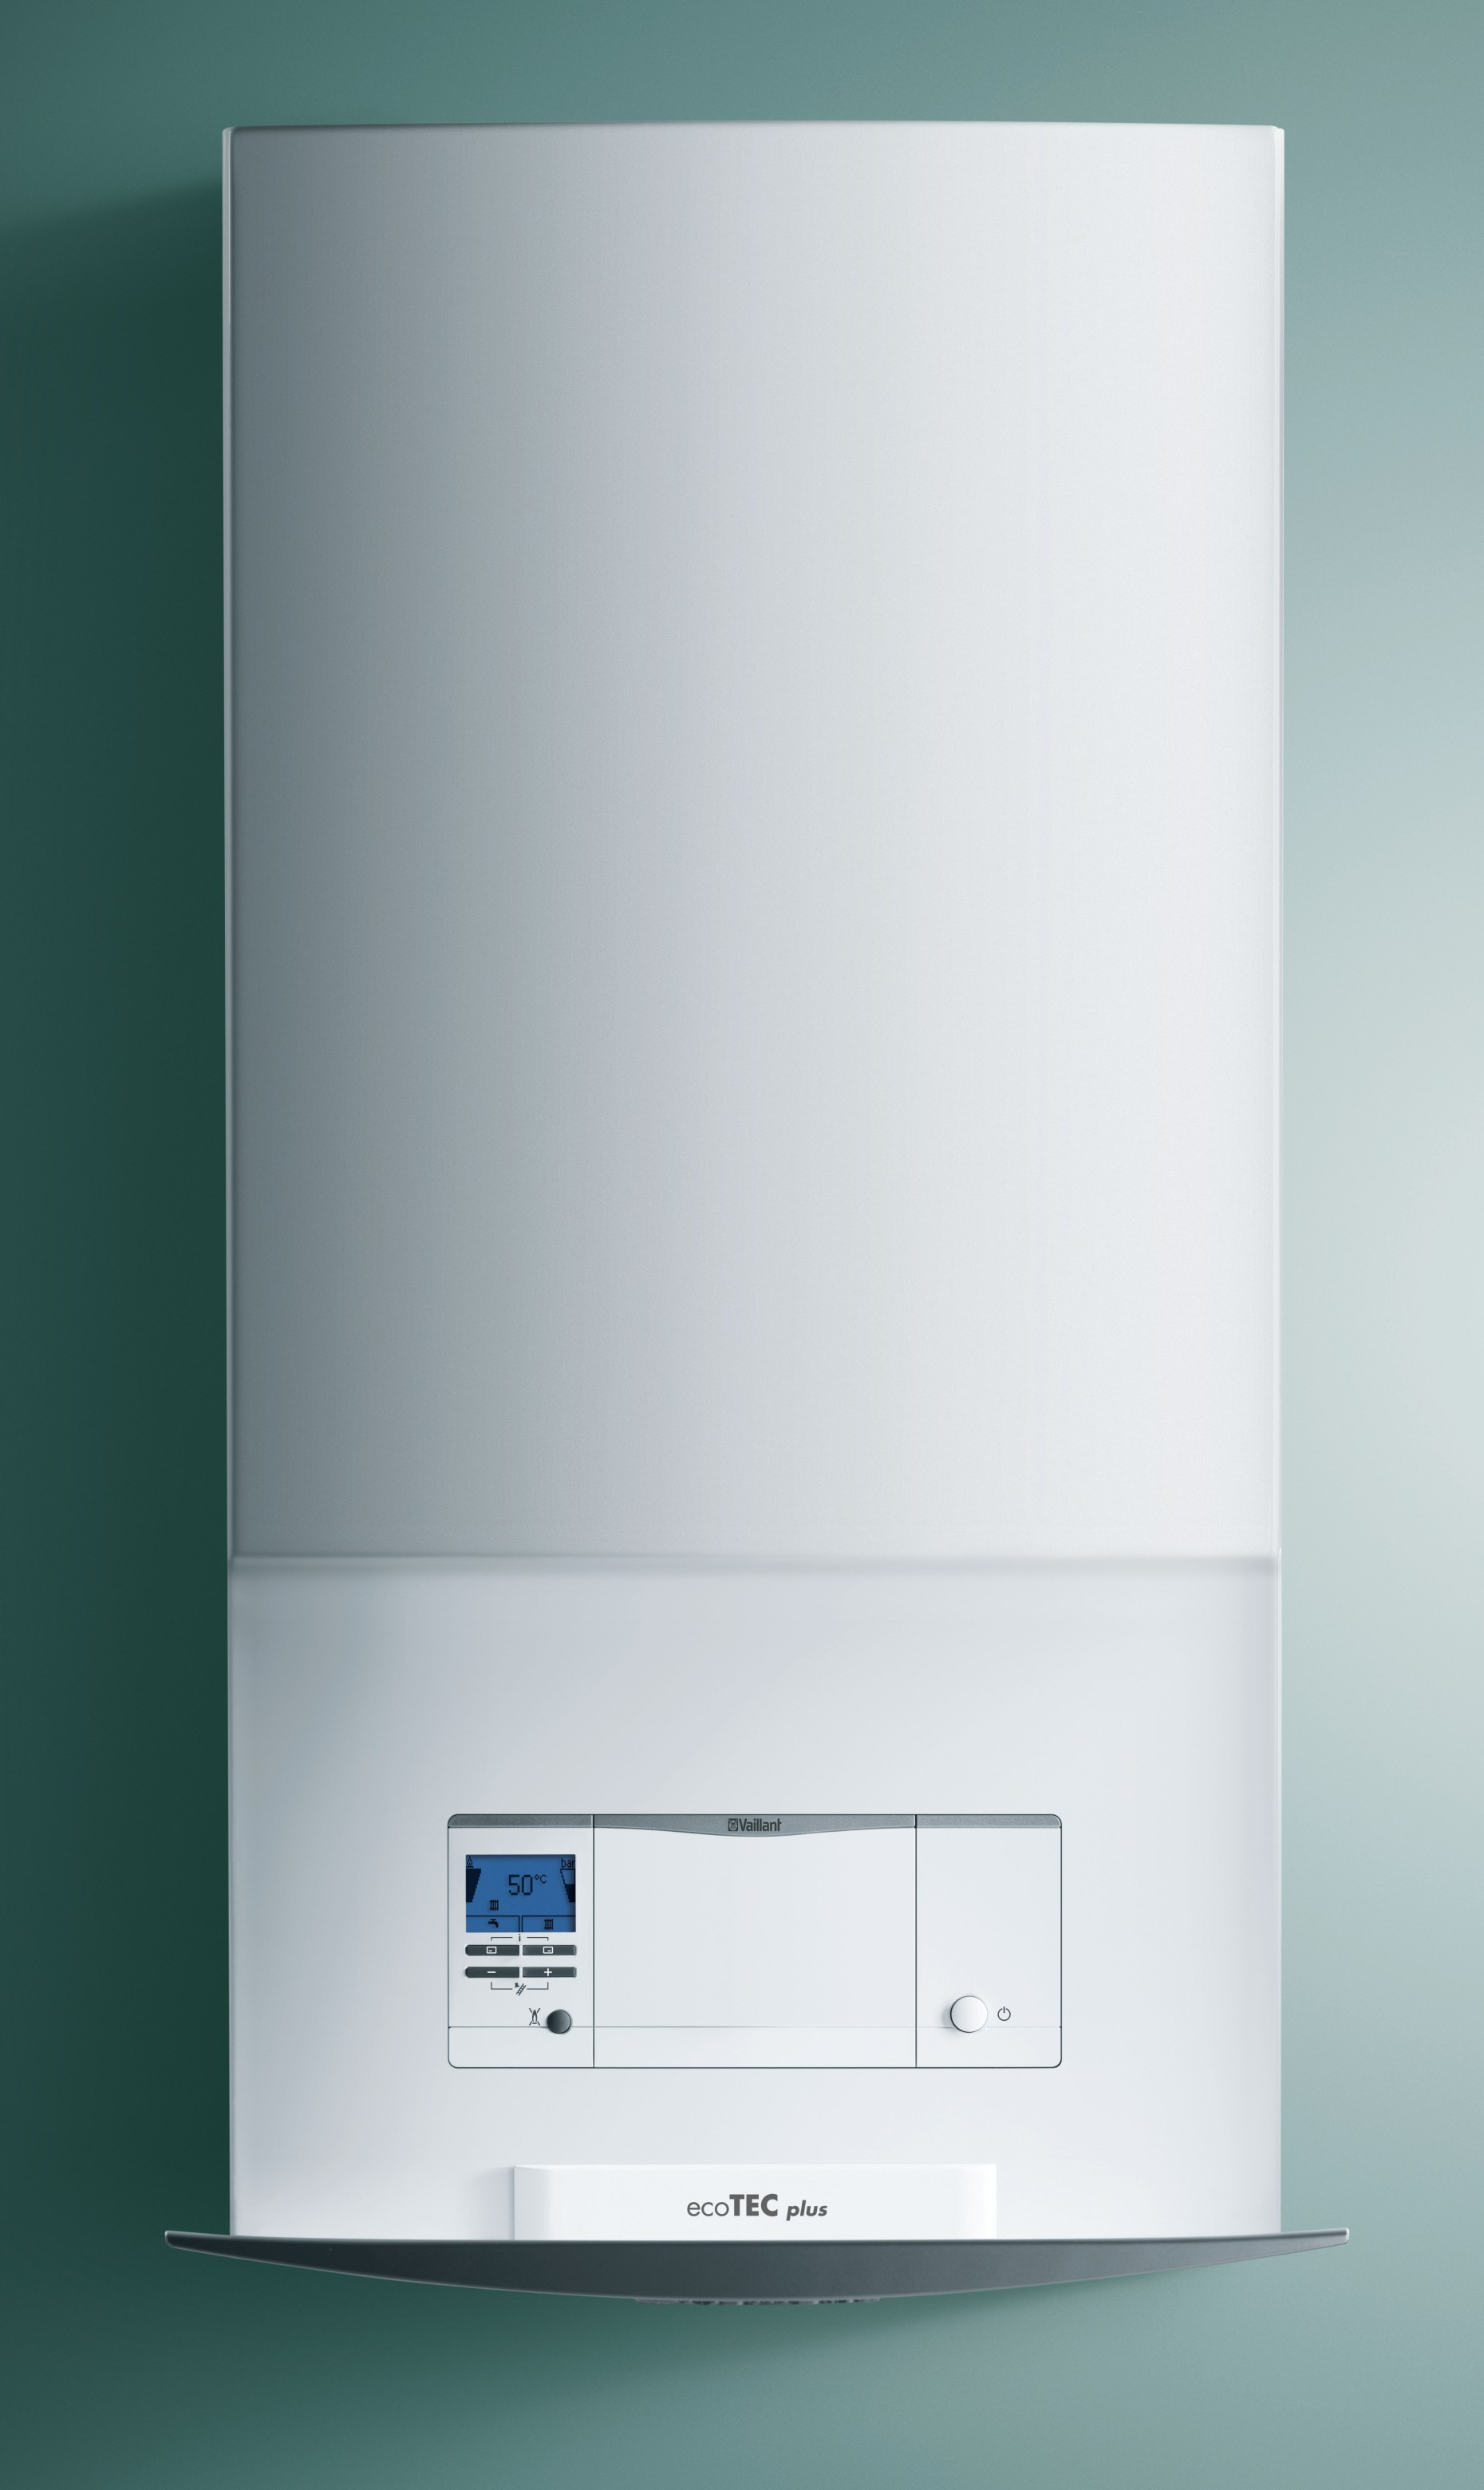 ecoTEC plus industrikedler | Vaillant